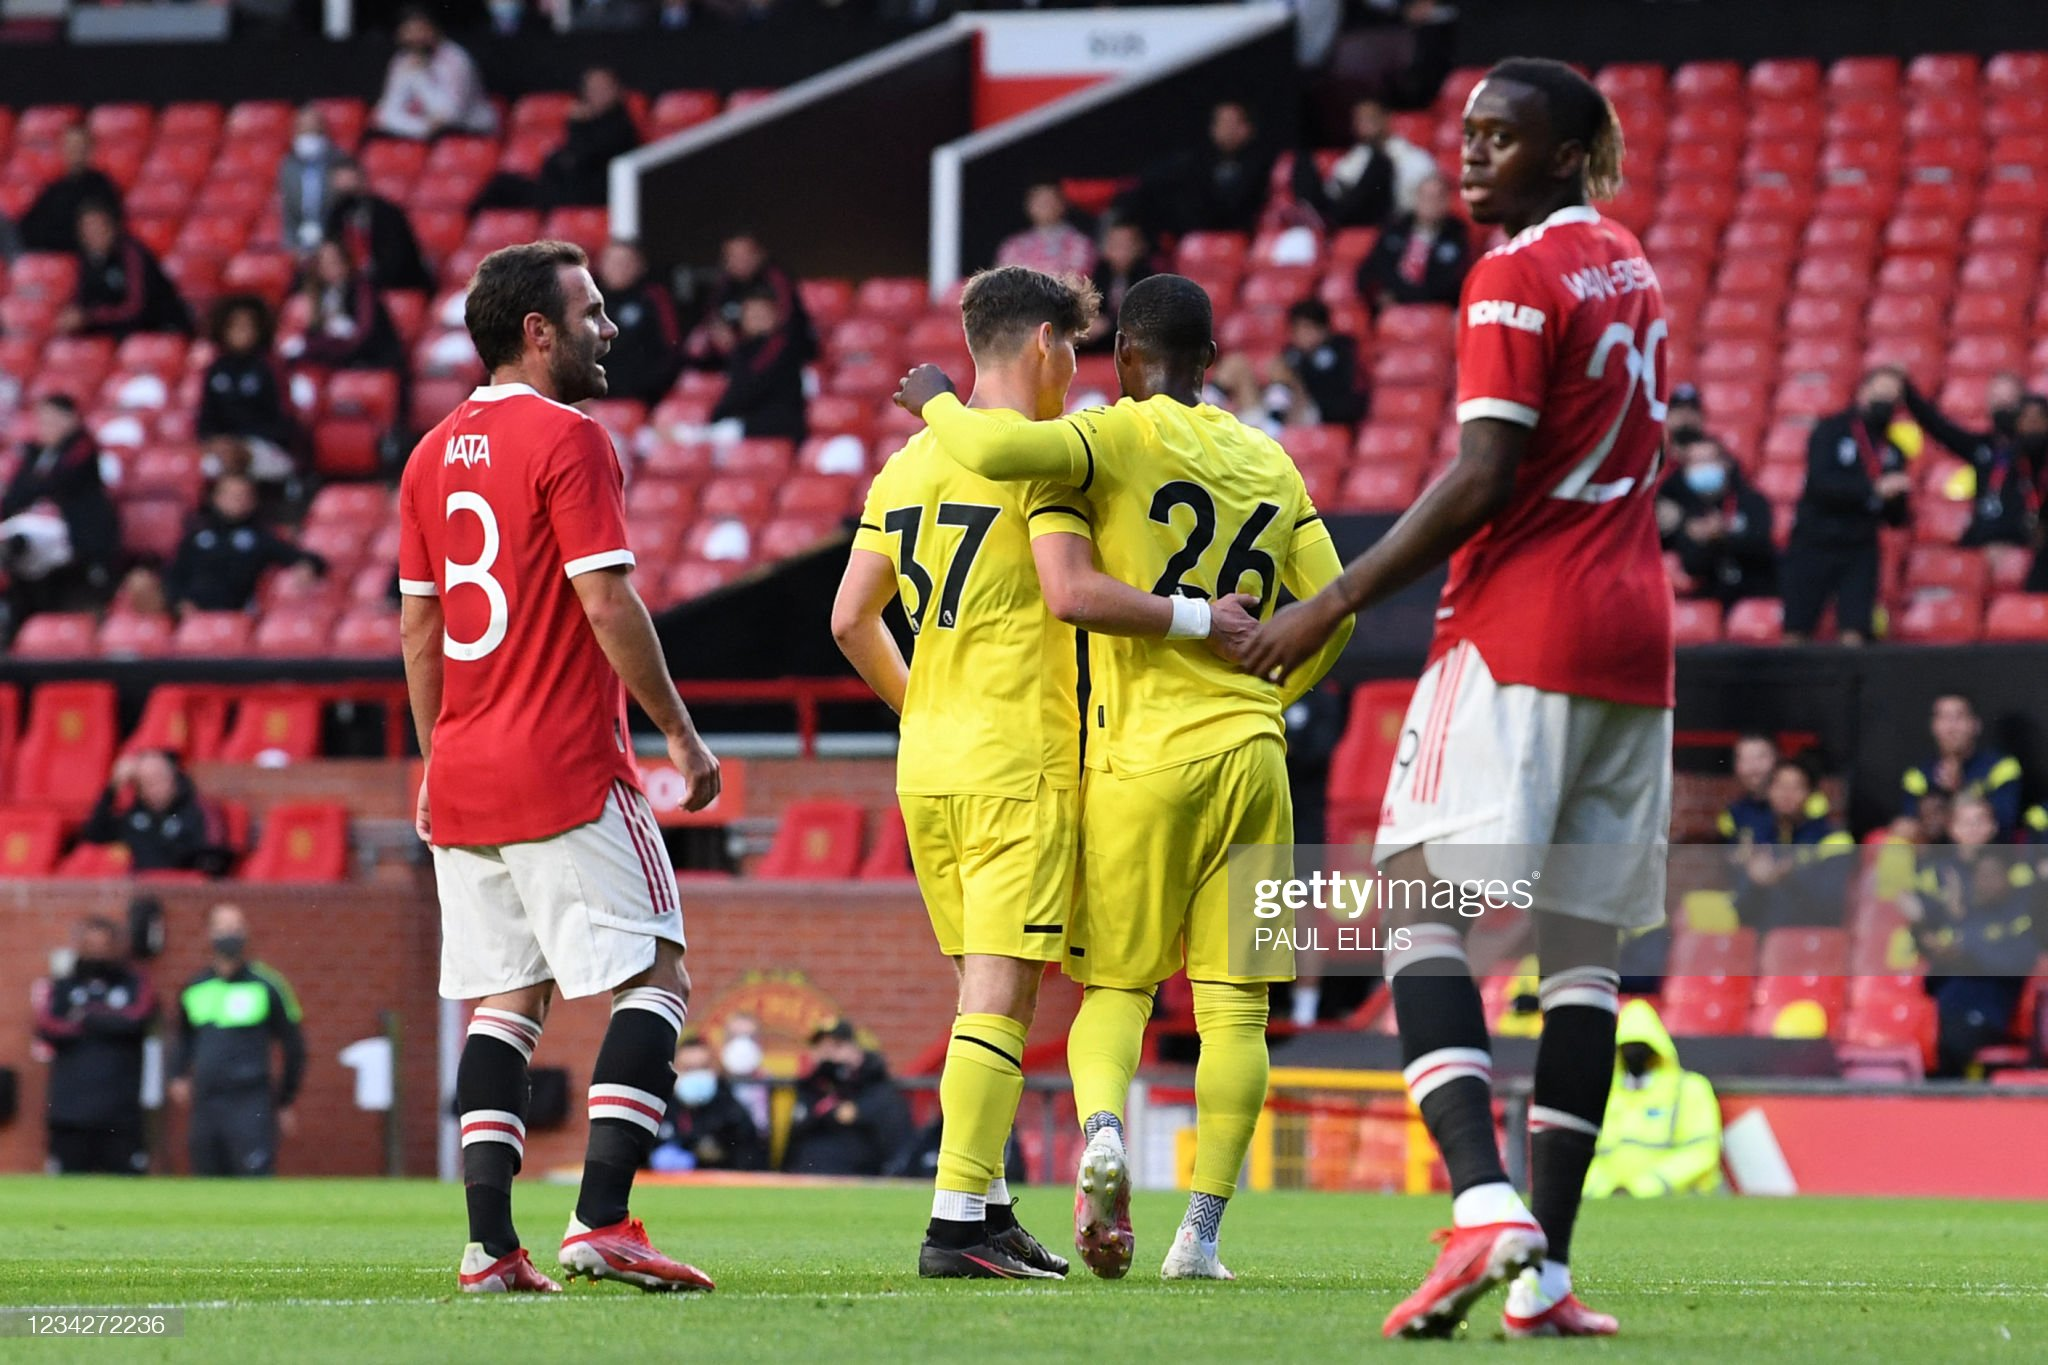 Bees draw with Man Utd on night of great goals at Old Trafford